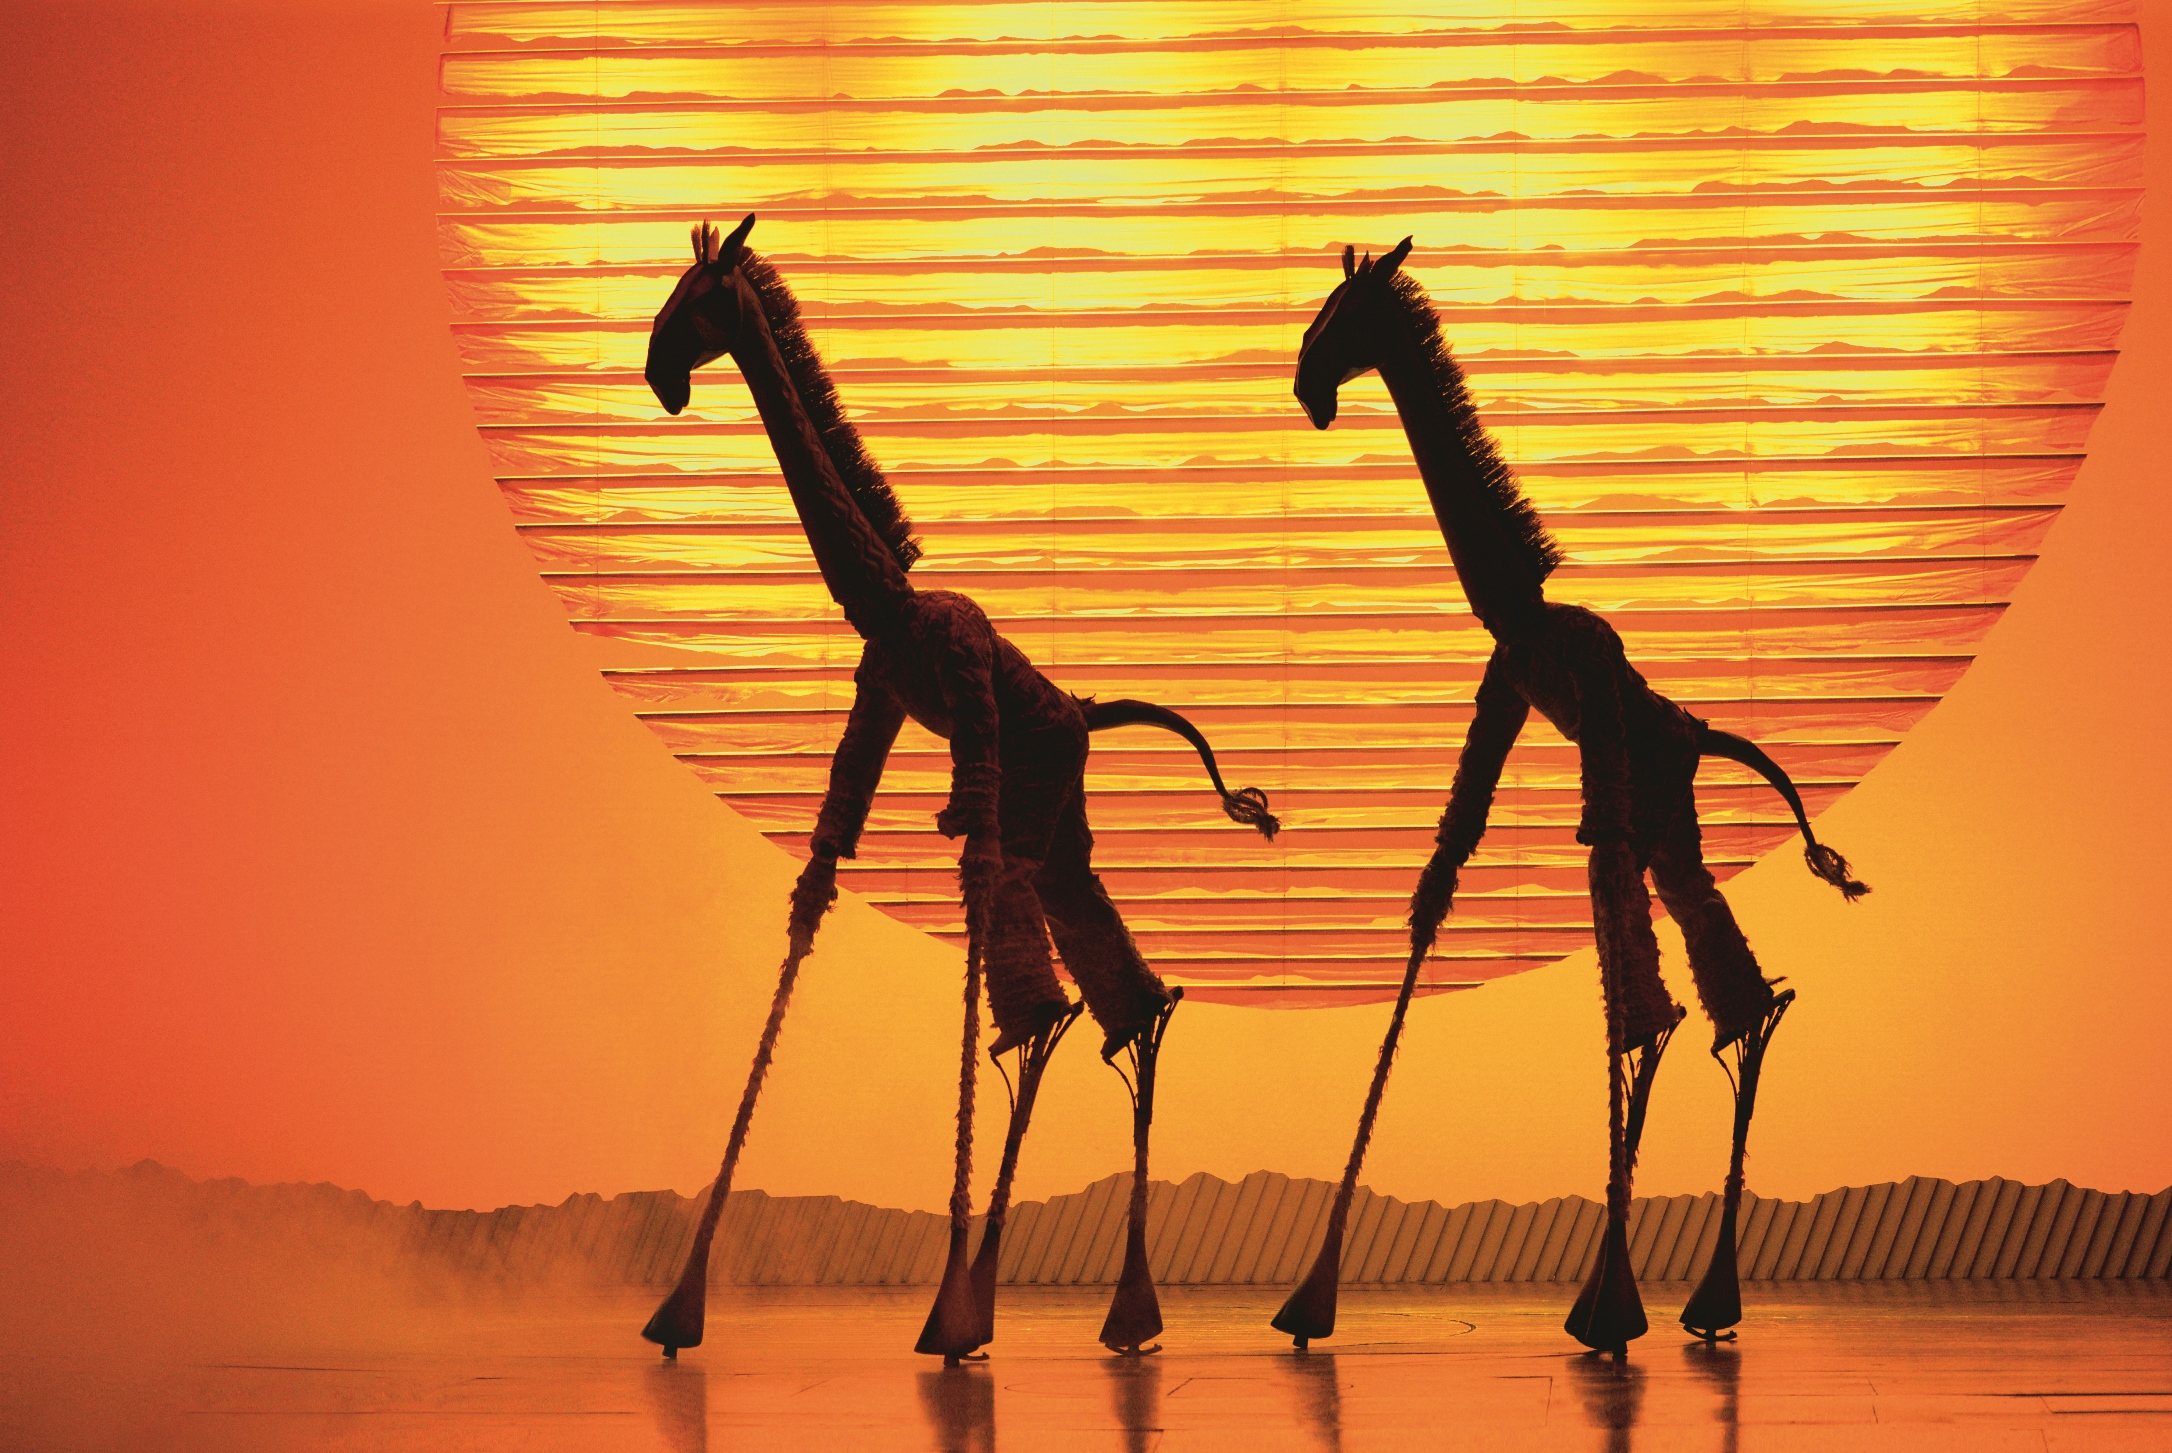 A scene from Disney's The Lion King which comes to Bristol Hippodrome from September 7 until November 23, 2019.